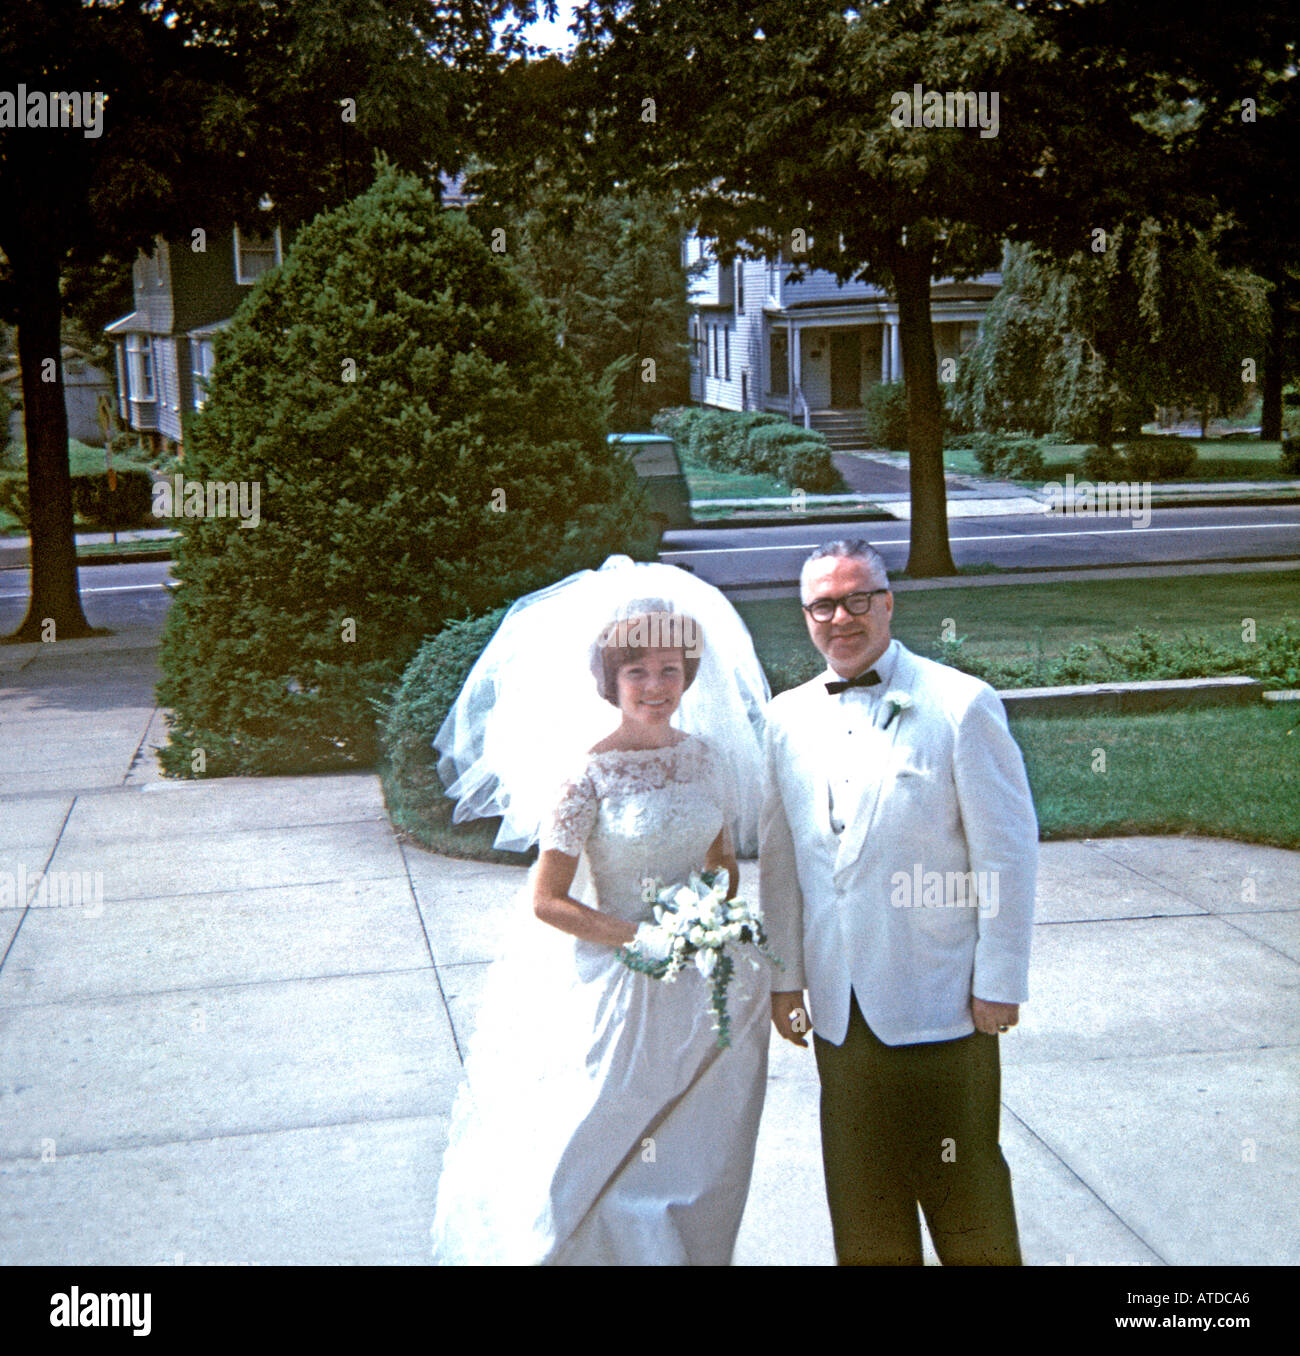 Vintage Wedding Dresses Usa: Thin Man And Fat Woman Stock Photos & Thin Man And Fat